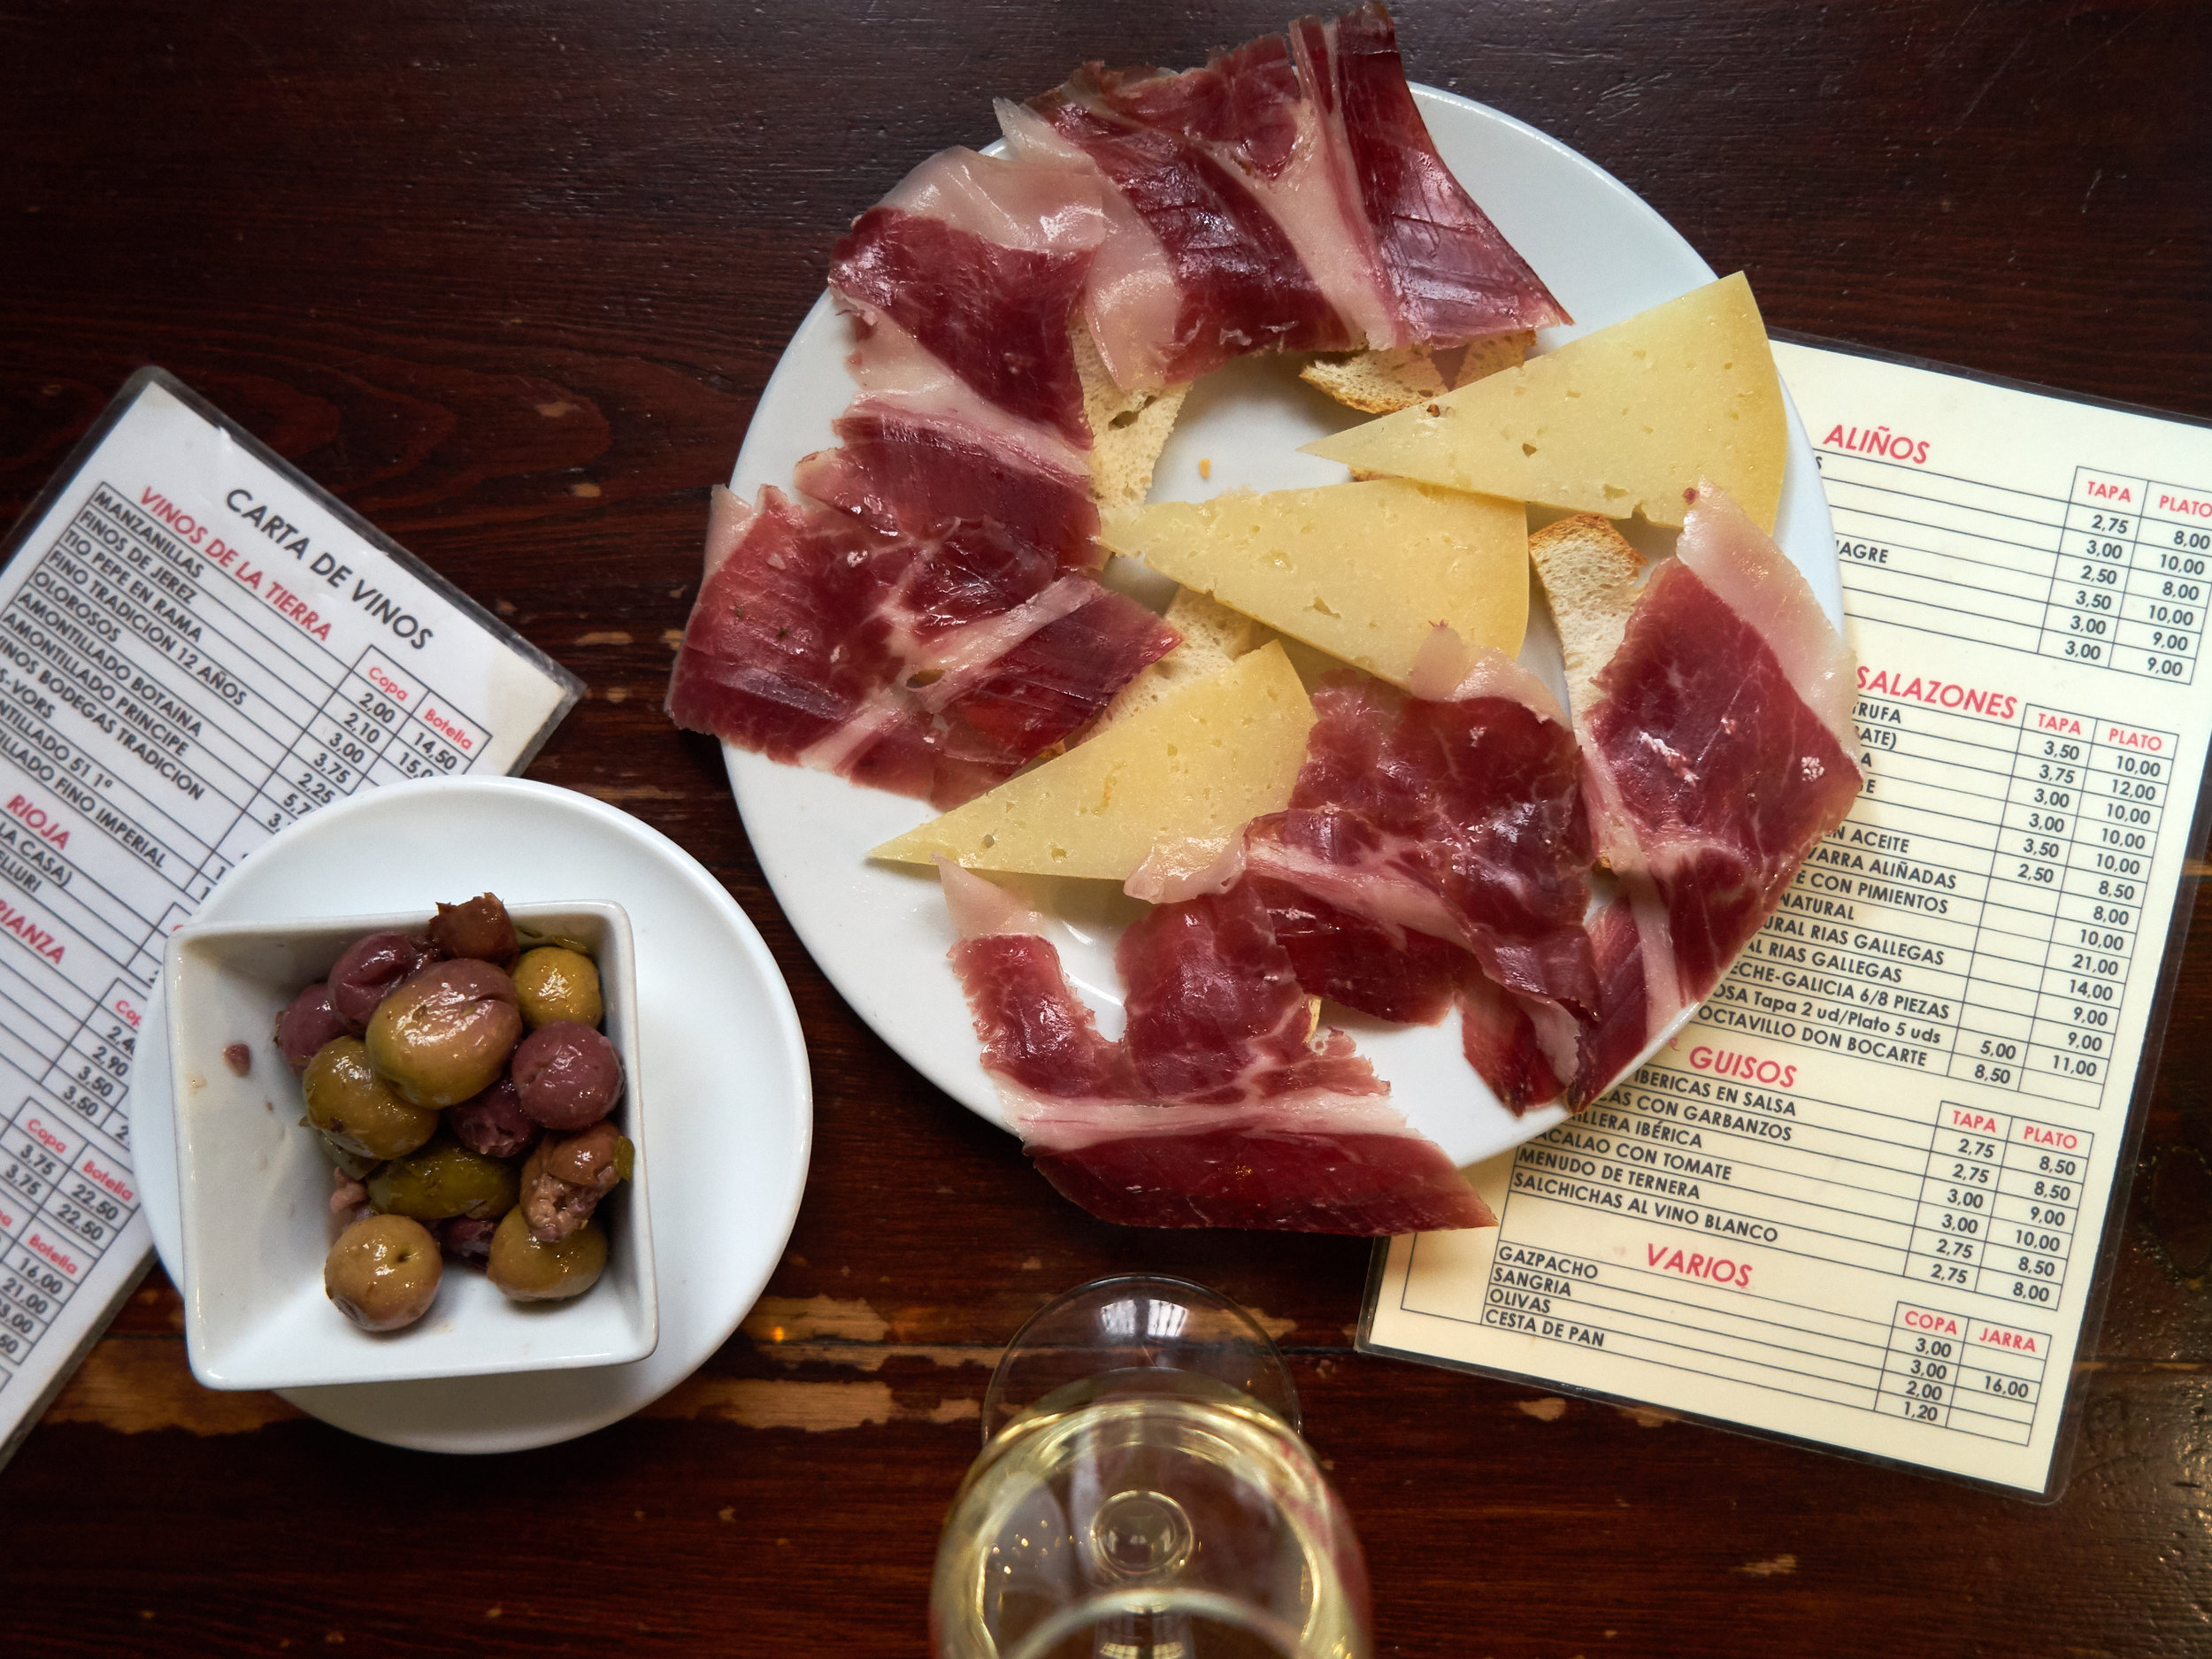 Sevilla bound? Whether you're a budding sherry collector or a lifelong  jamón  enthusiast (or a vegetarian who refuses to settle!),  Pilar  can help you explore beyond the  croqueta .